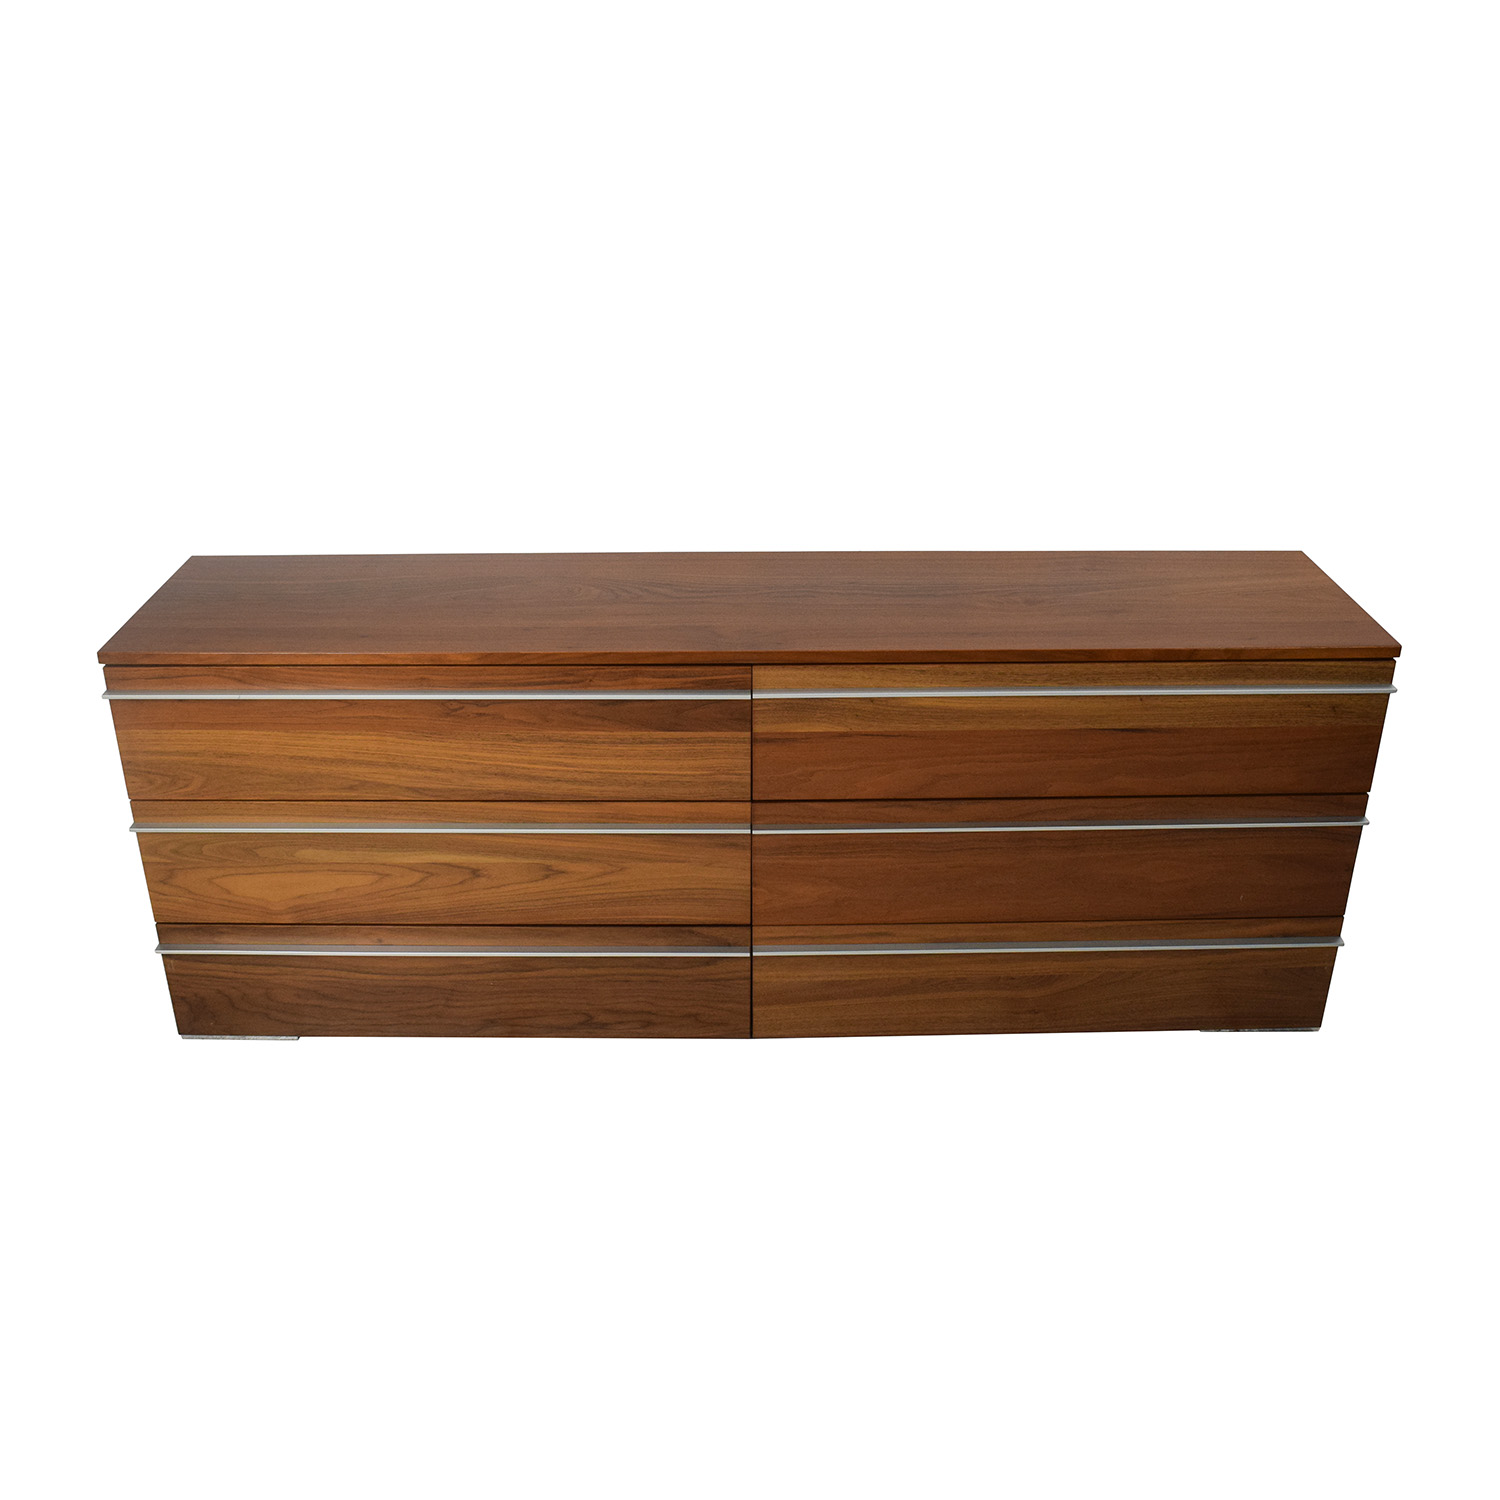 BoConcept BoConcept 6-Drawer Double Dresser second hand